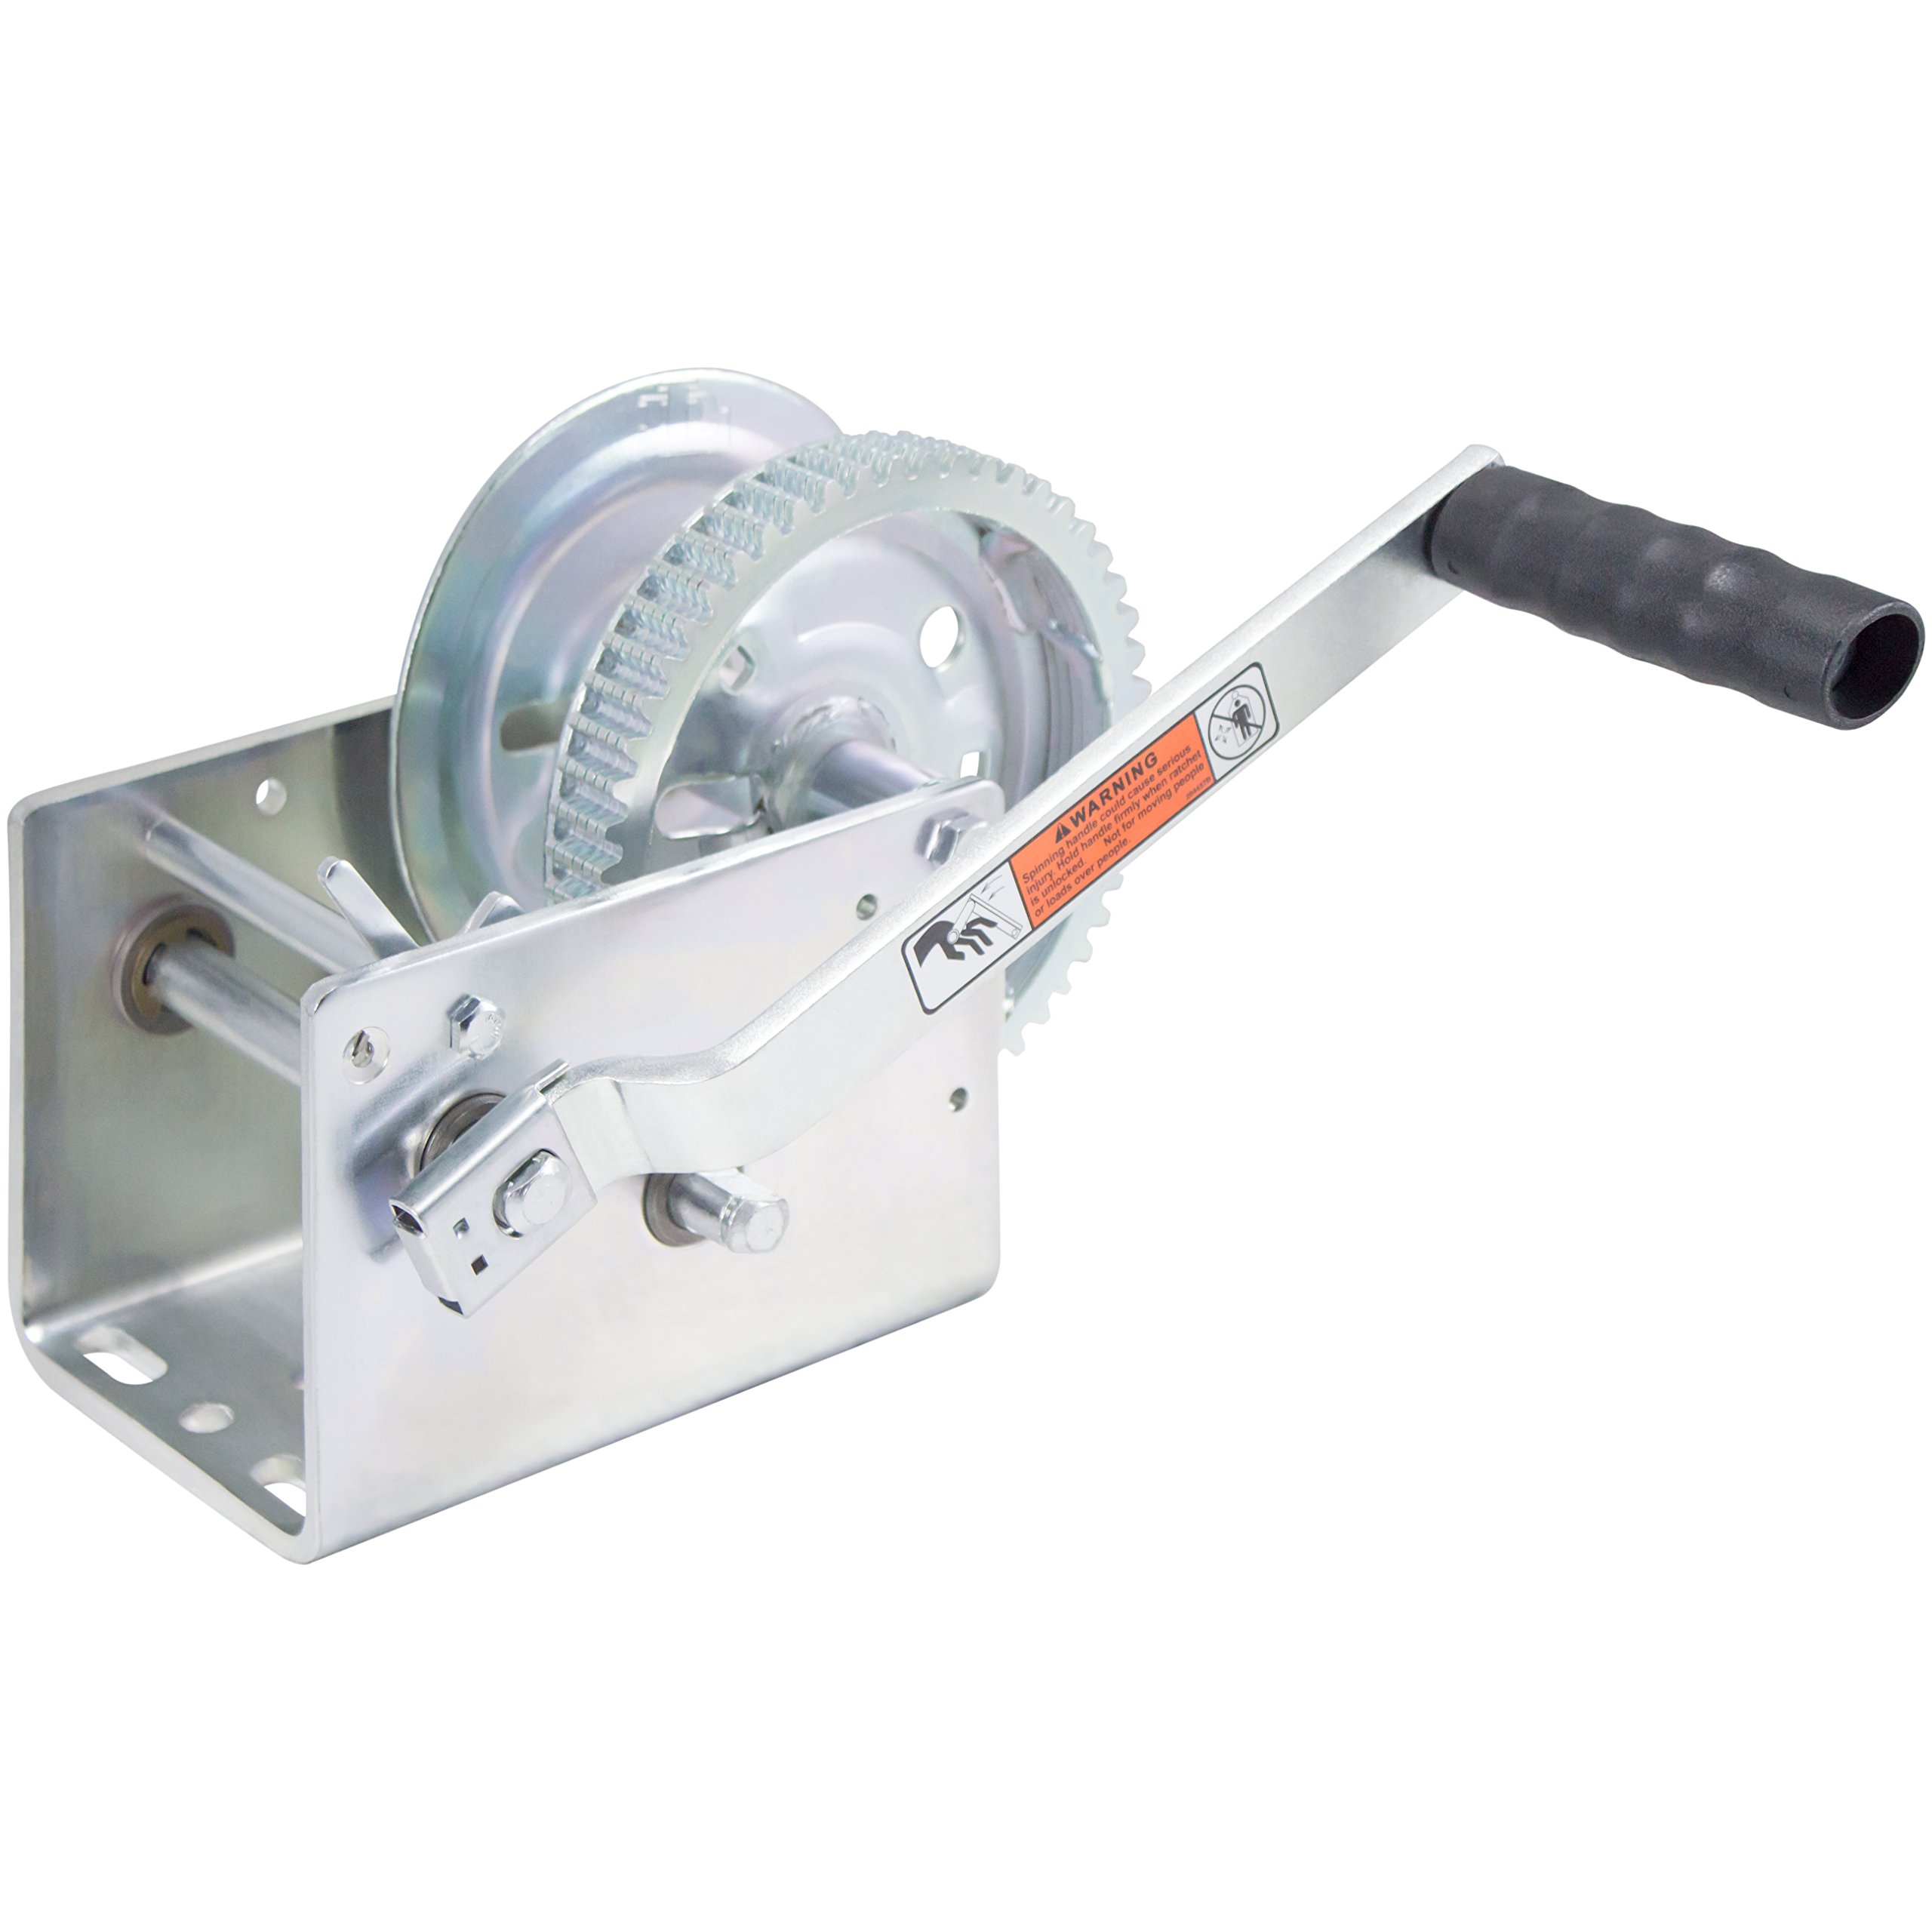 Dutton-Lainson DL3200A 3200 lb Plated Pulling Winch